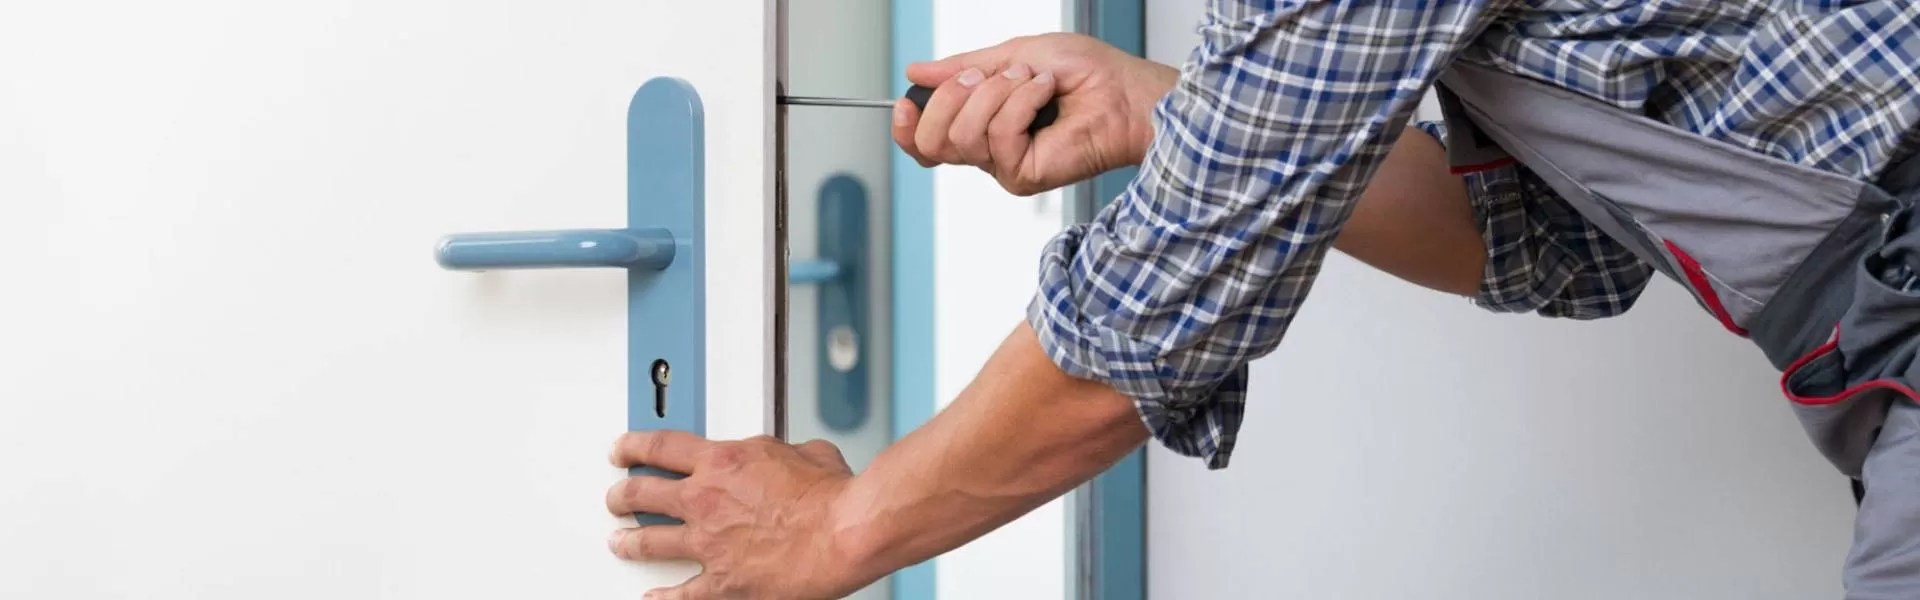 Doors & Locks Company You Can Count On